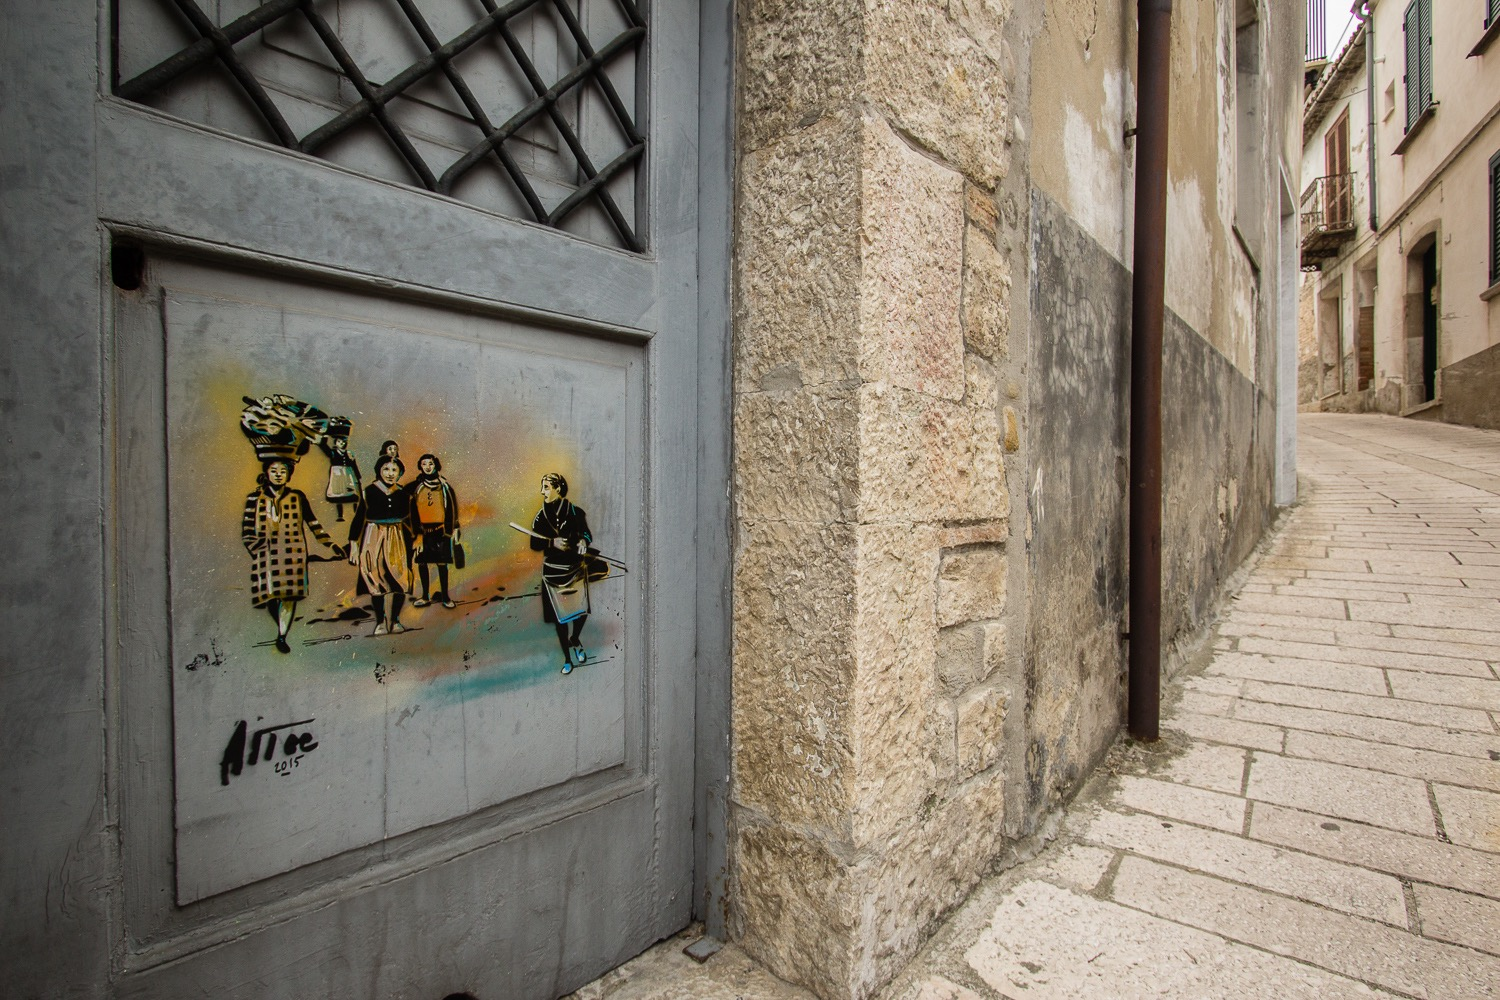 Street Art by Alice Pasquini in Civitacampomarano, Molise, Italy. Photo by Jessica Stewart 6